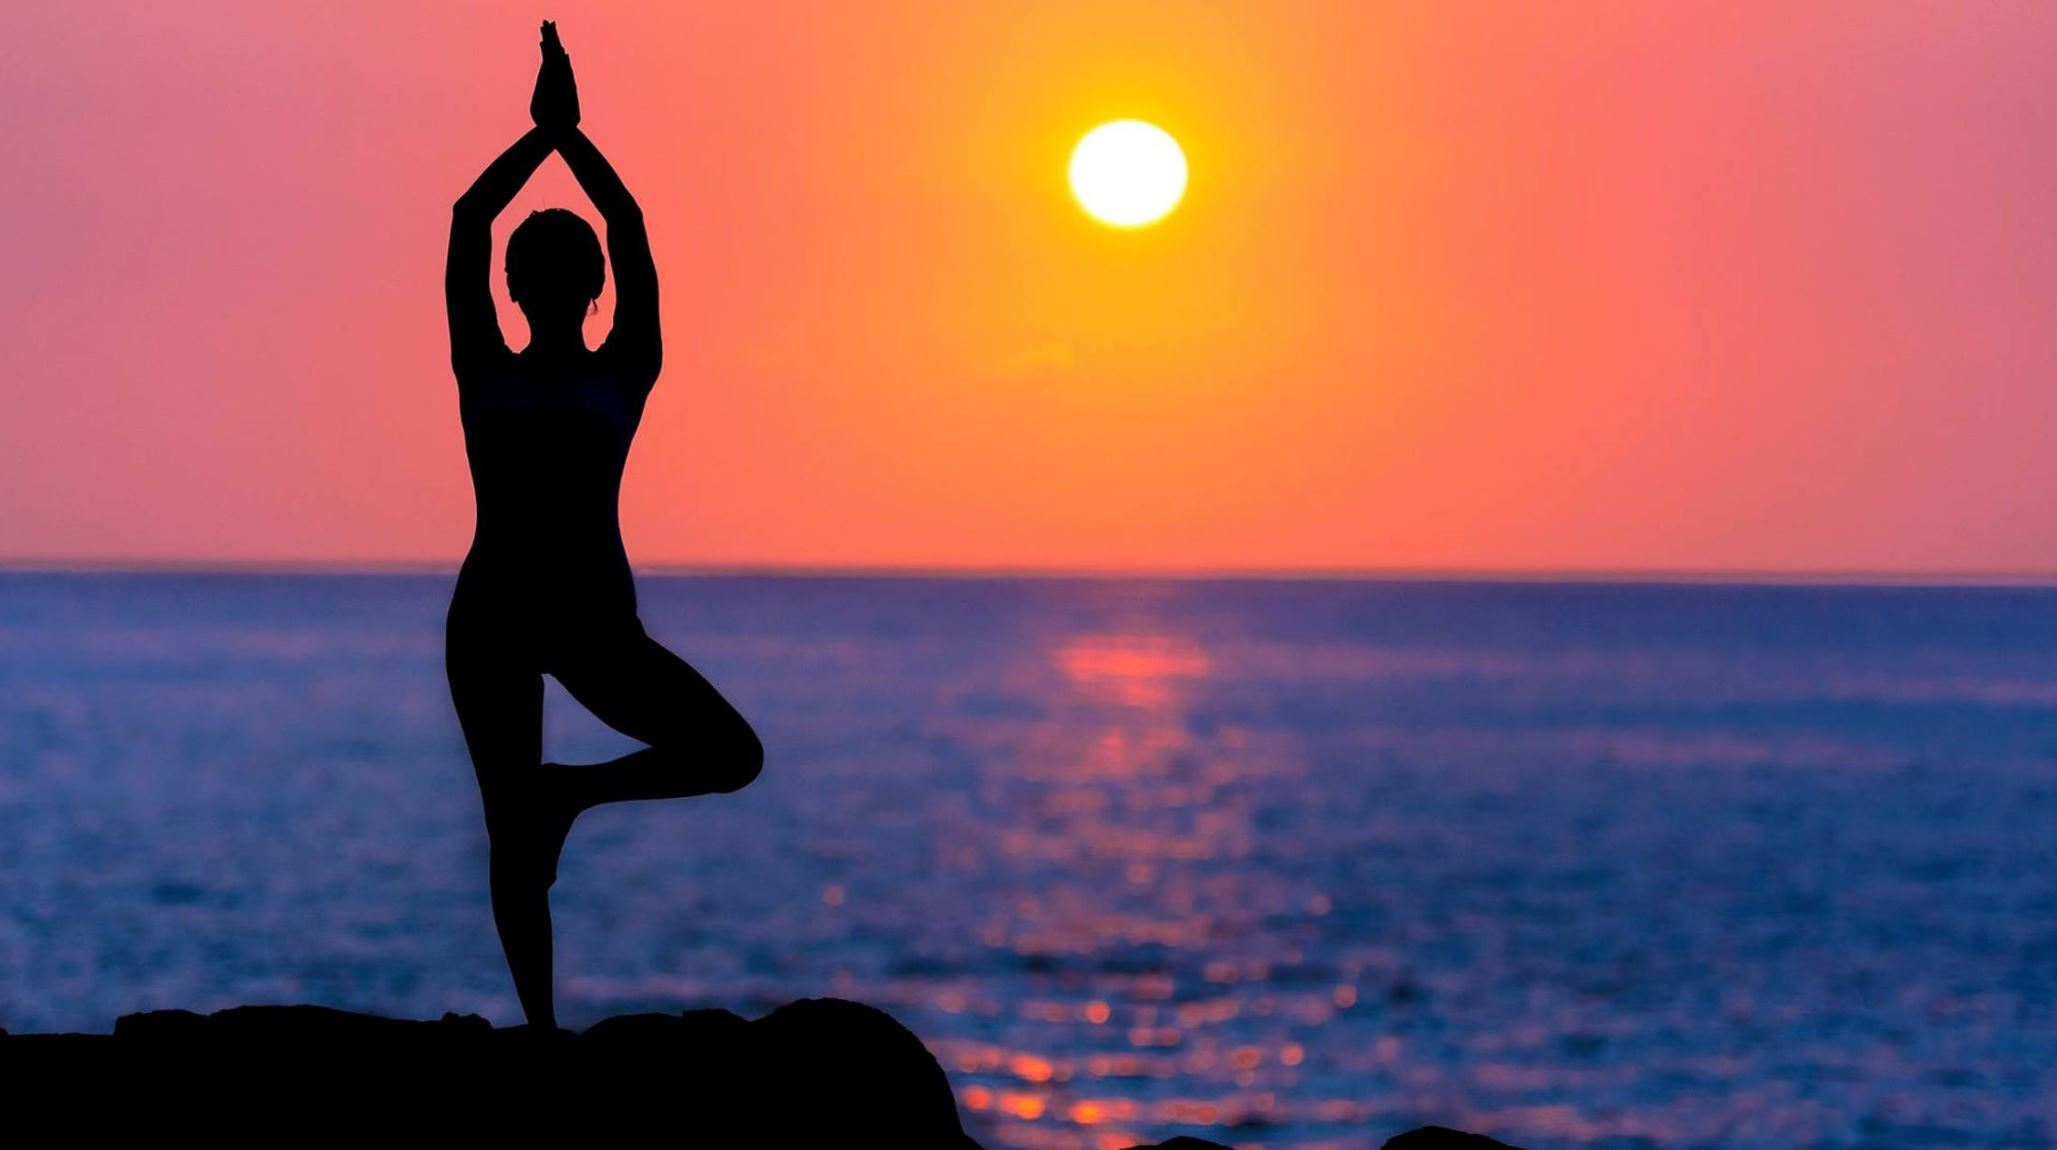 Silhouette of woman doing yoga on background of red sky and blue water